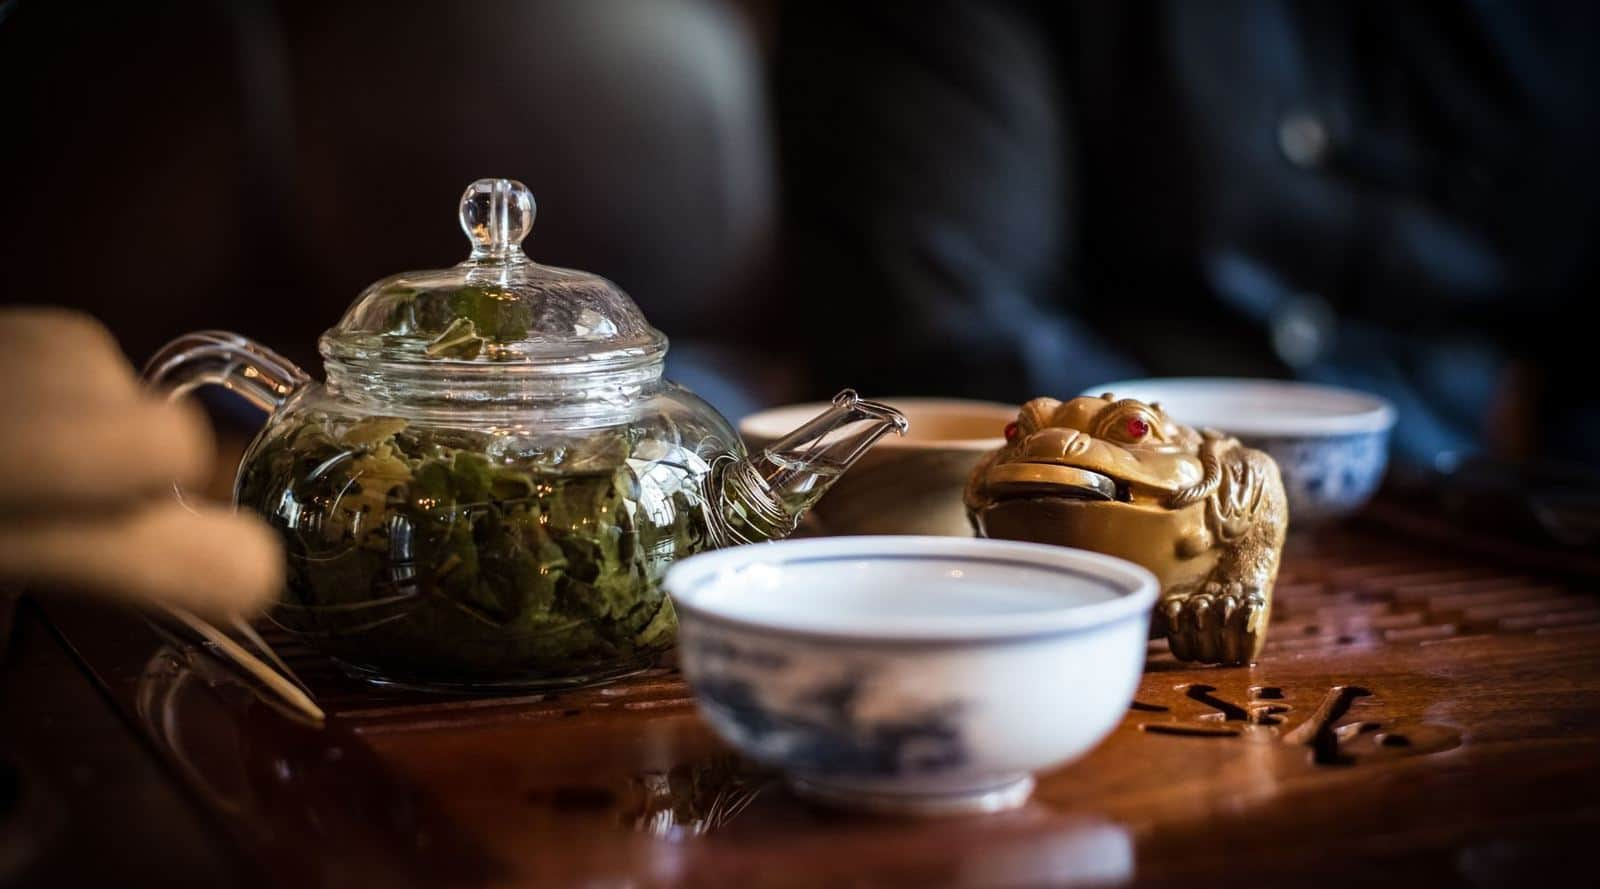 learn the difference between steeping and brewing tea